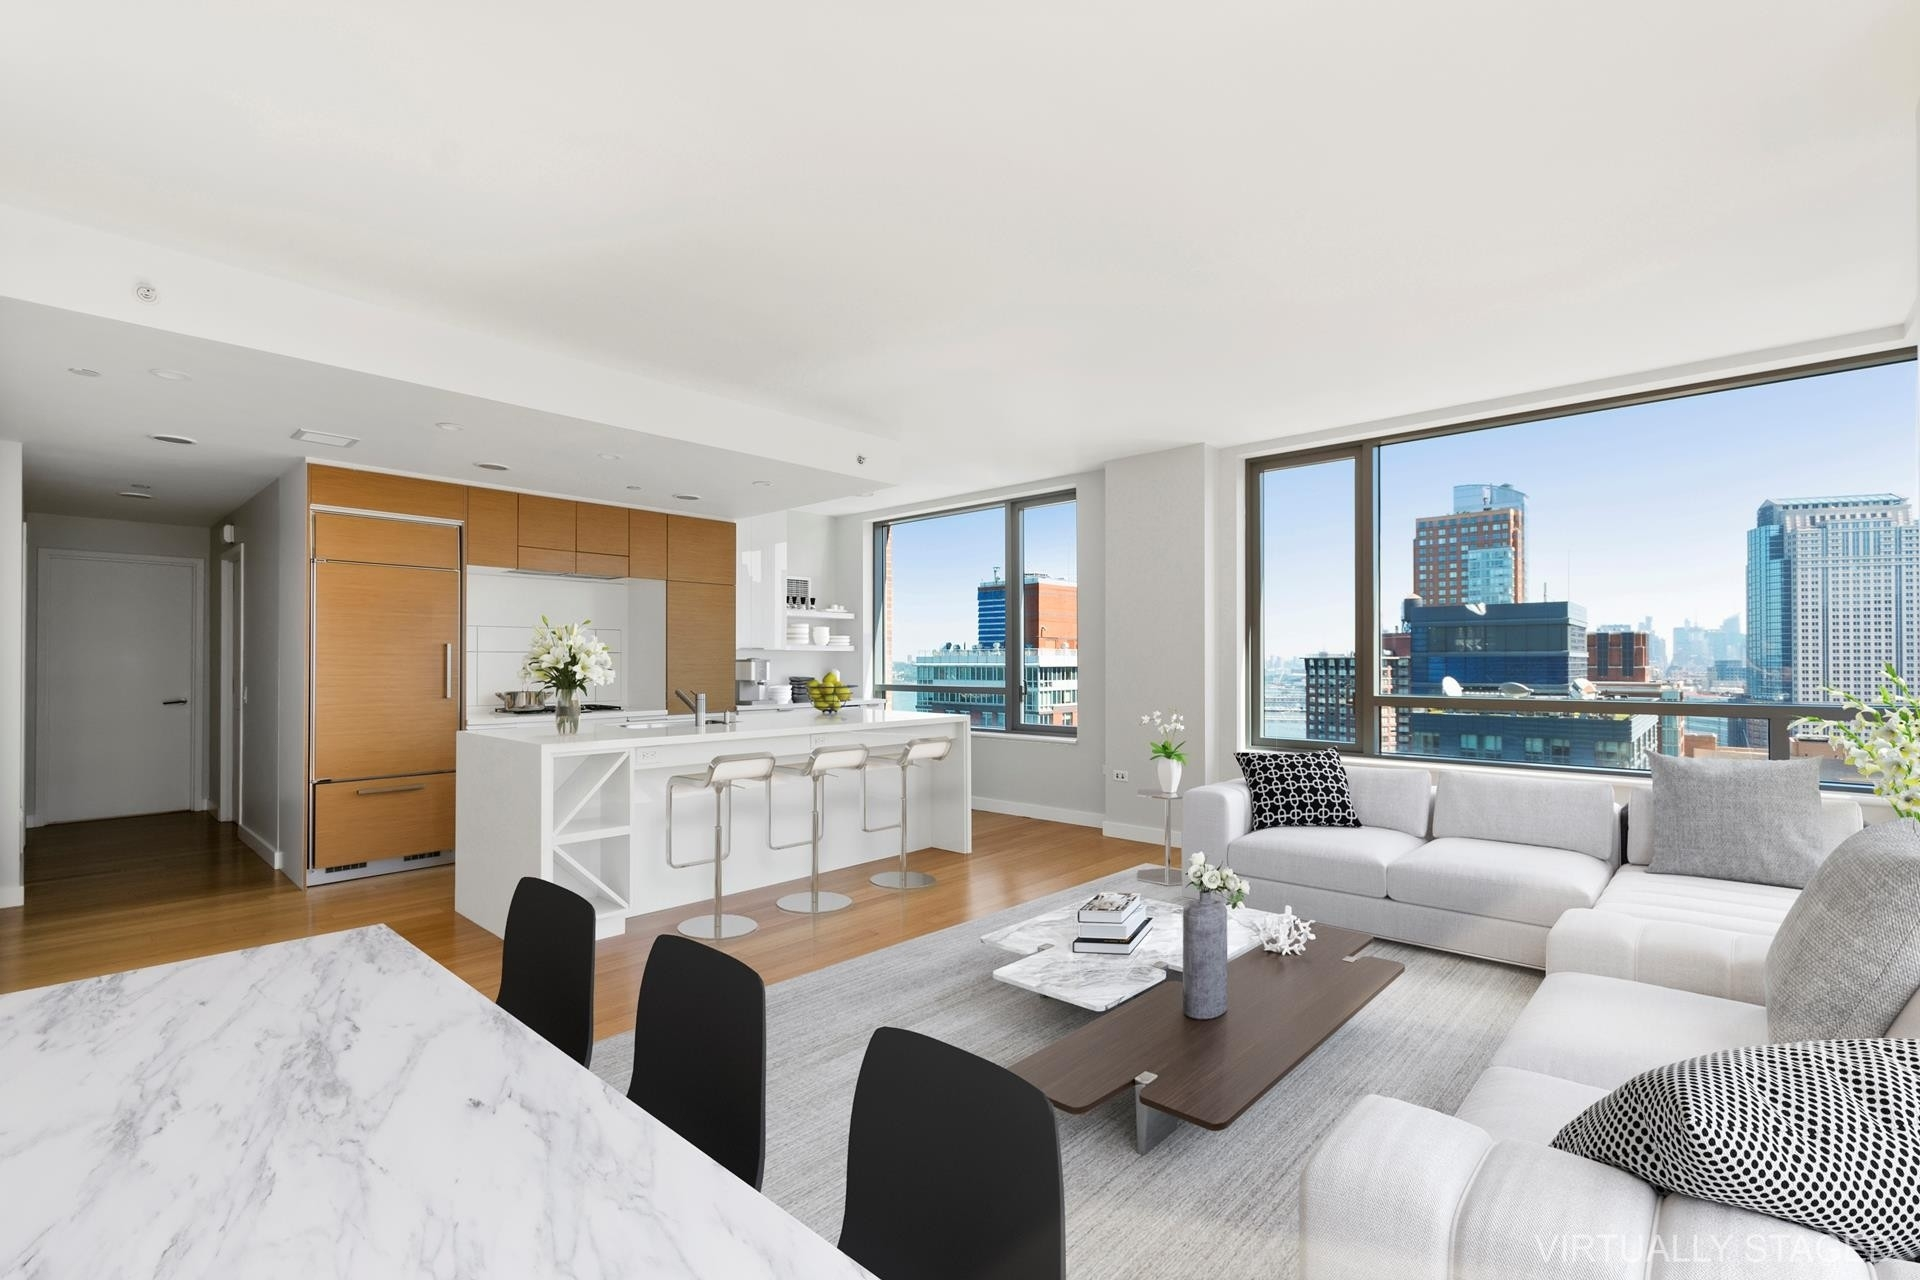 Property at The Riverhouse, 2 RIVER TER , 26A New York